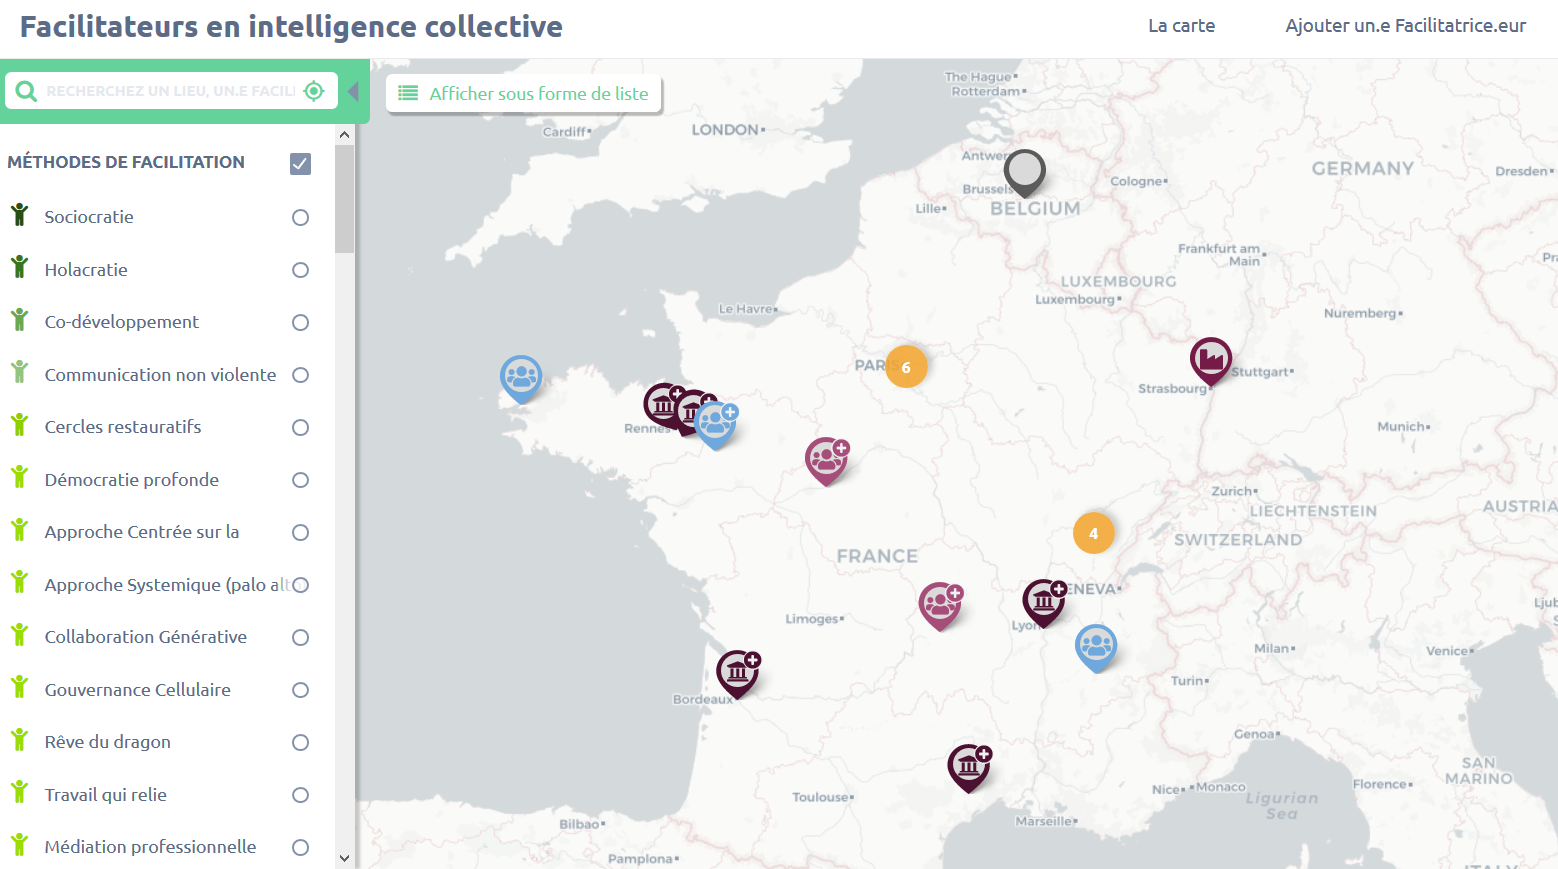 Carte des facilitateurs